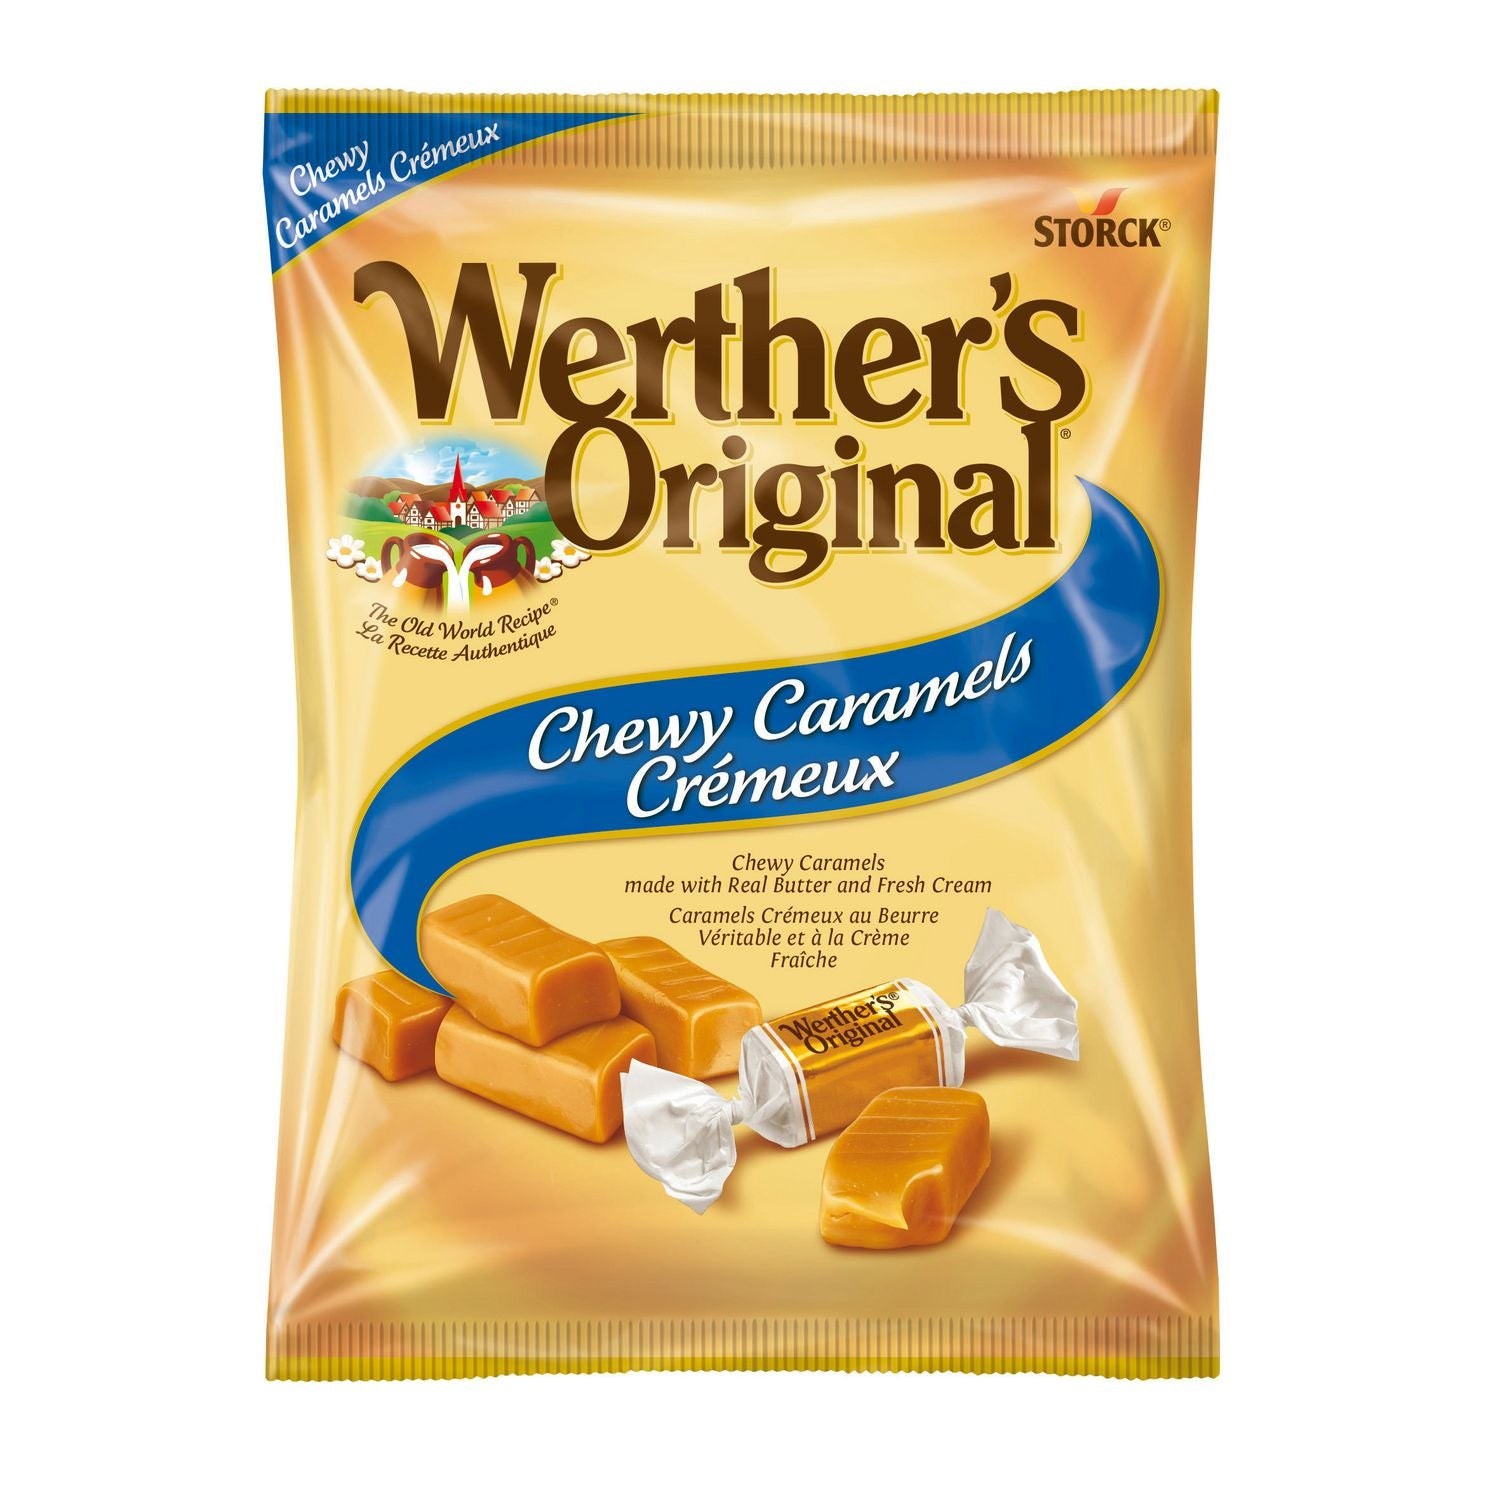 Werther's Original: Chewy Caramels